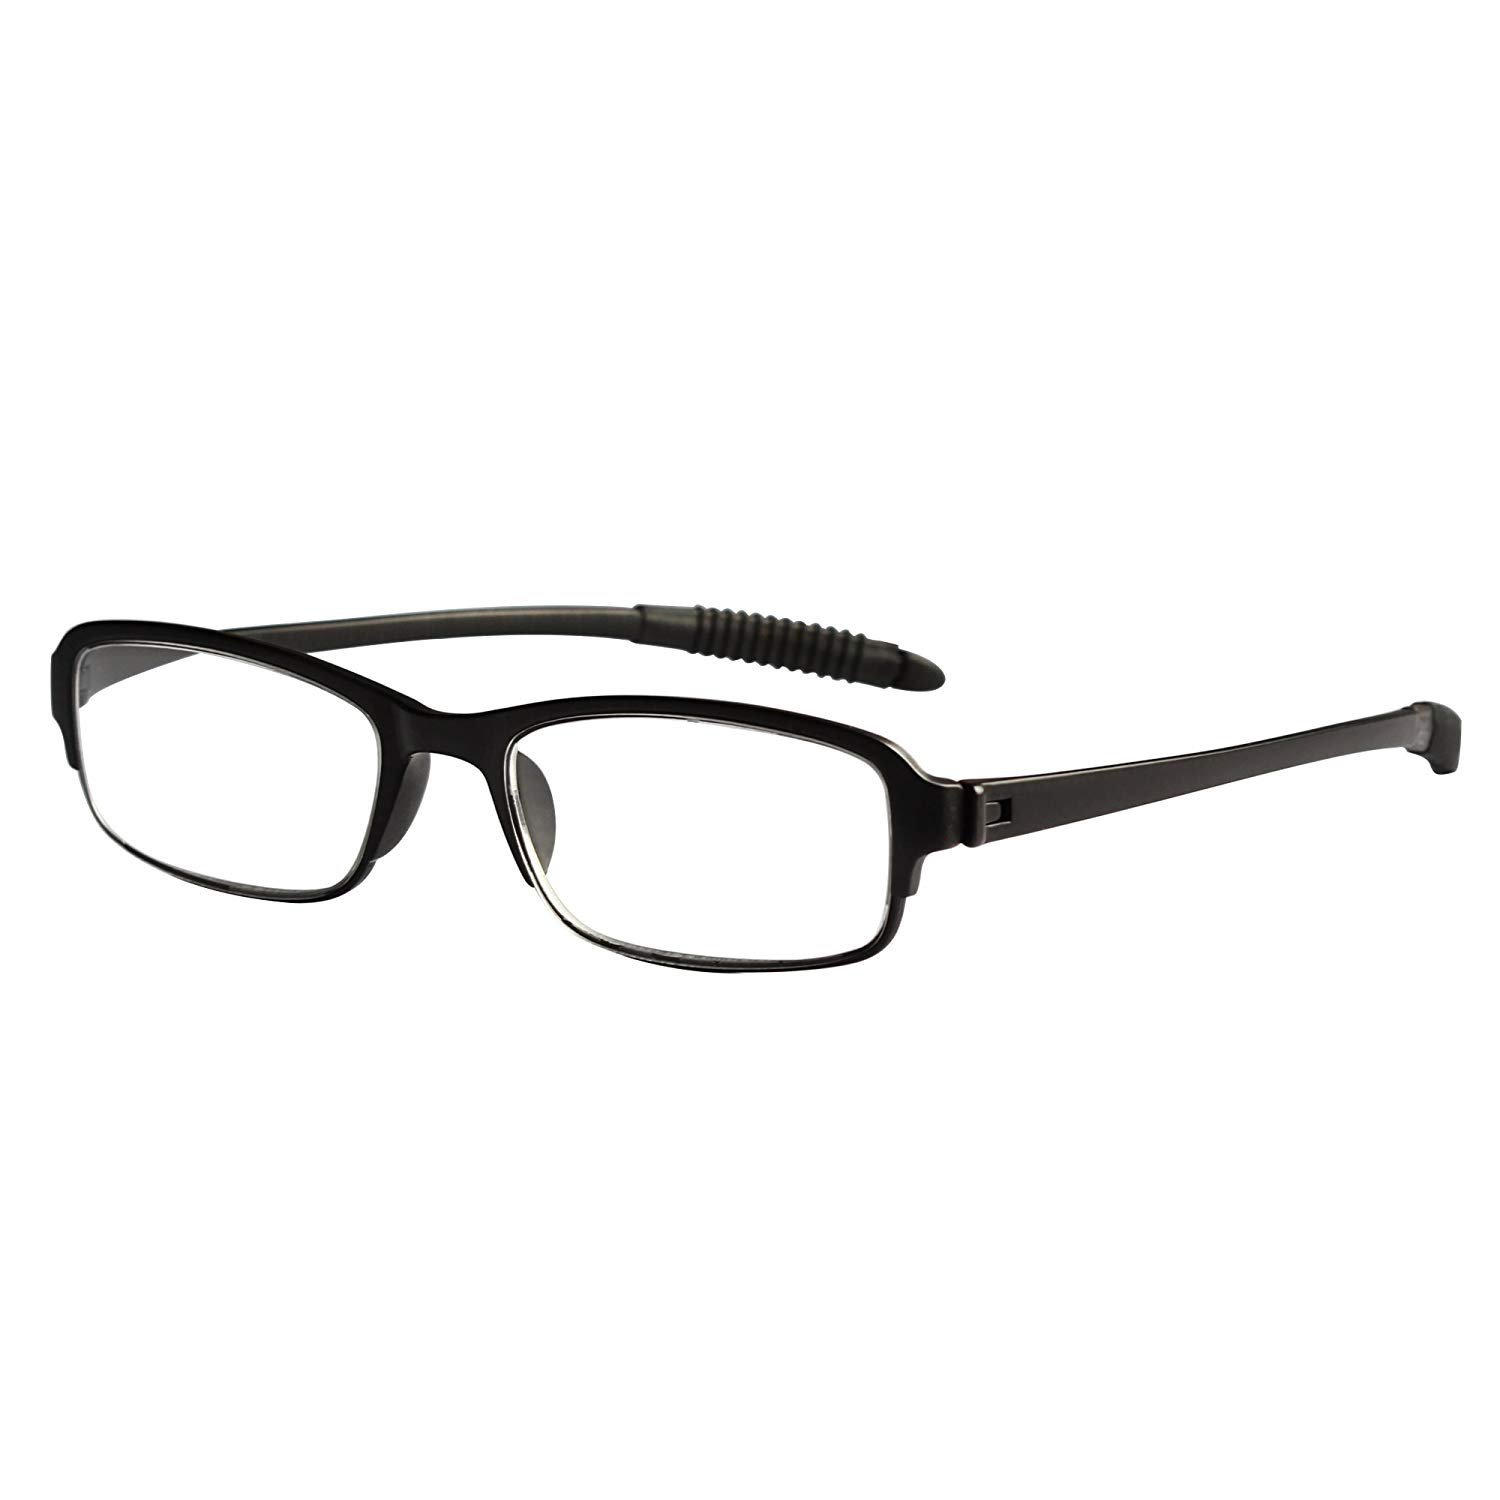 tenth-doctor-glasses